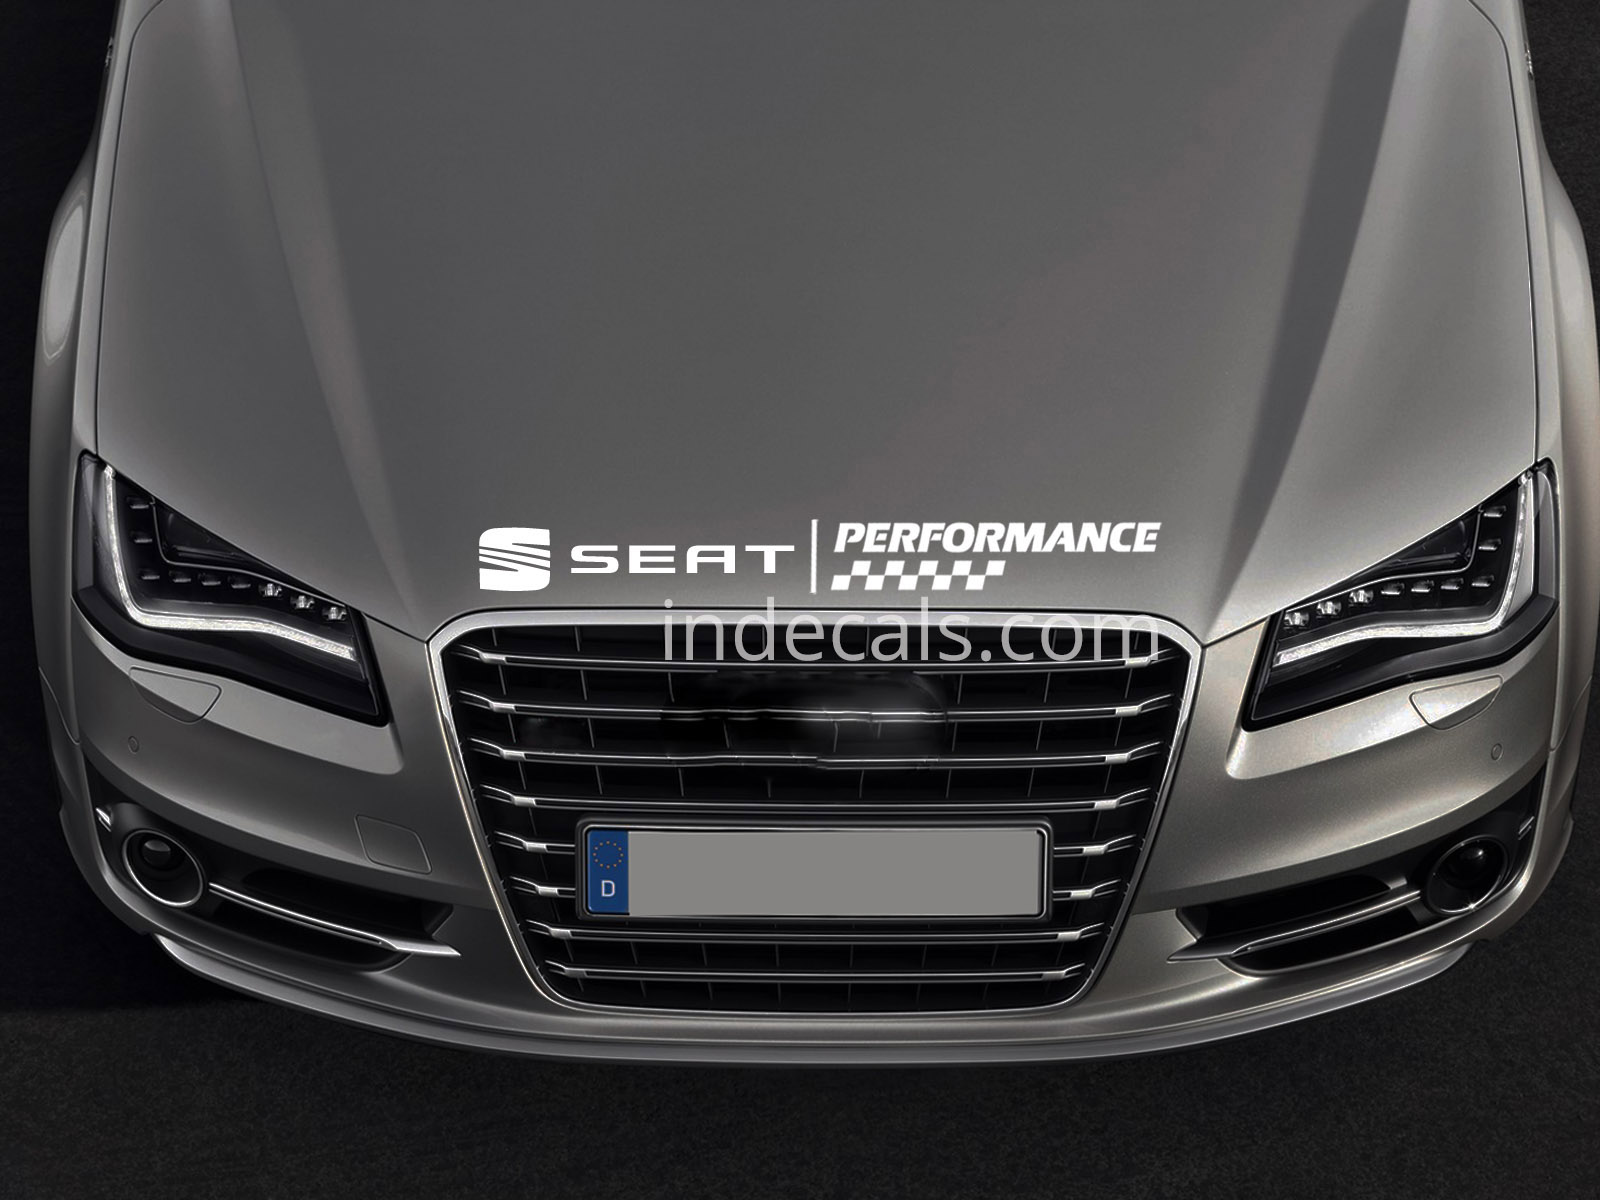 1 x Seat Peformance Sticker for Bonnet - White